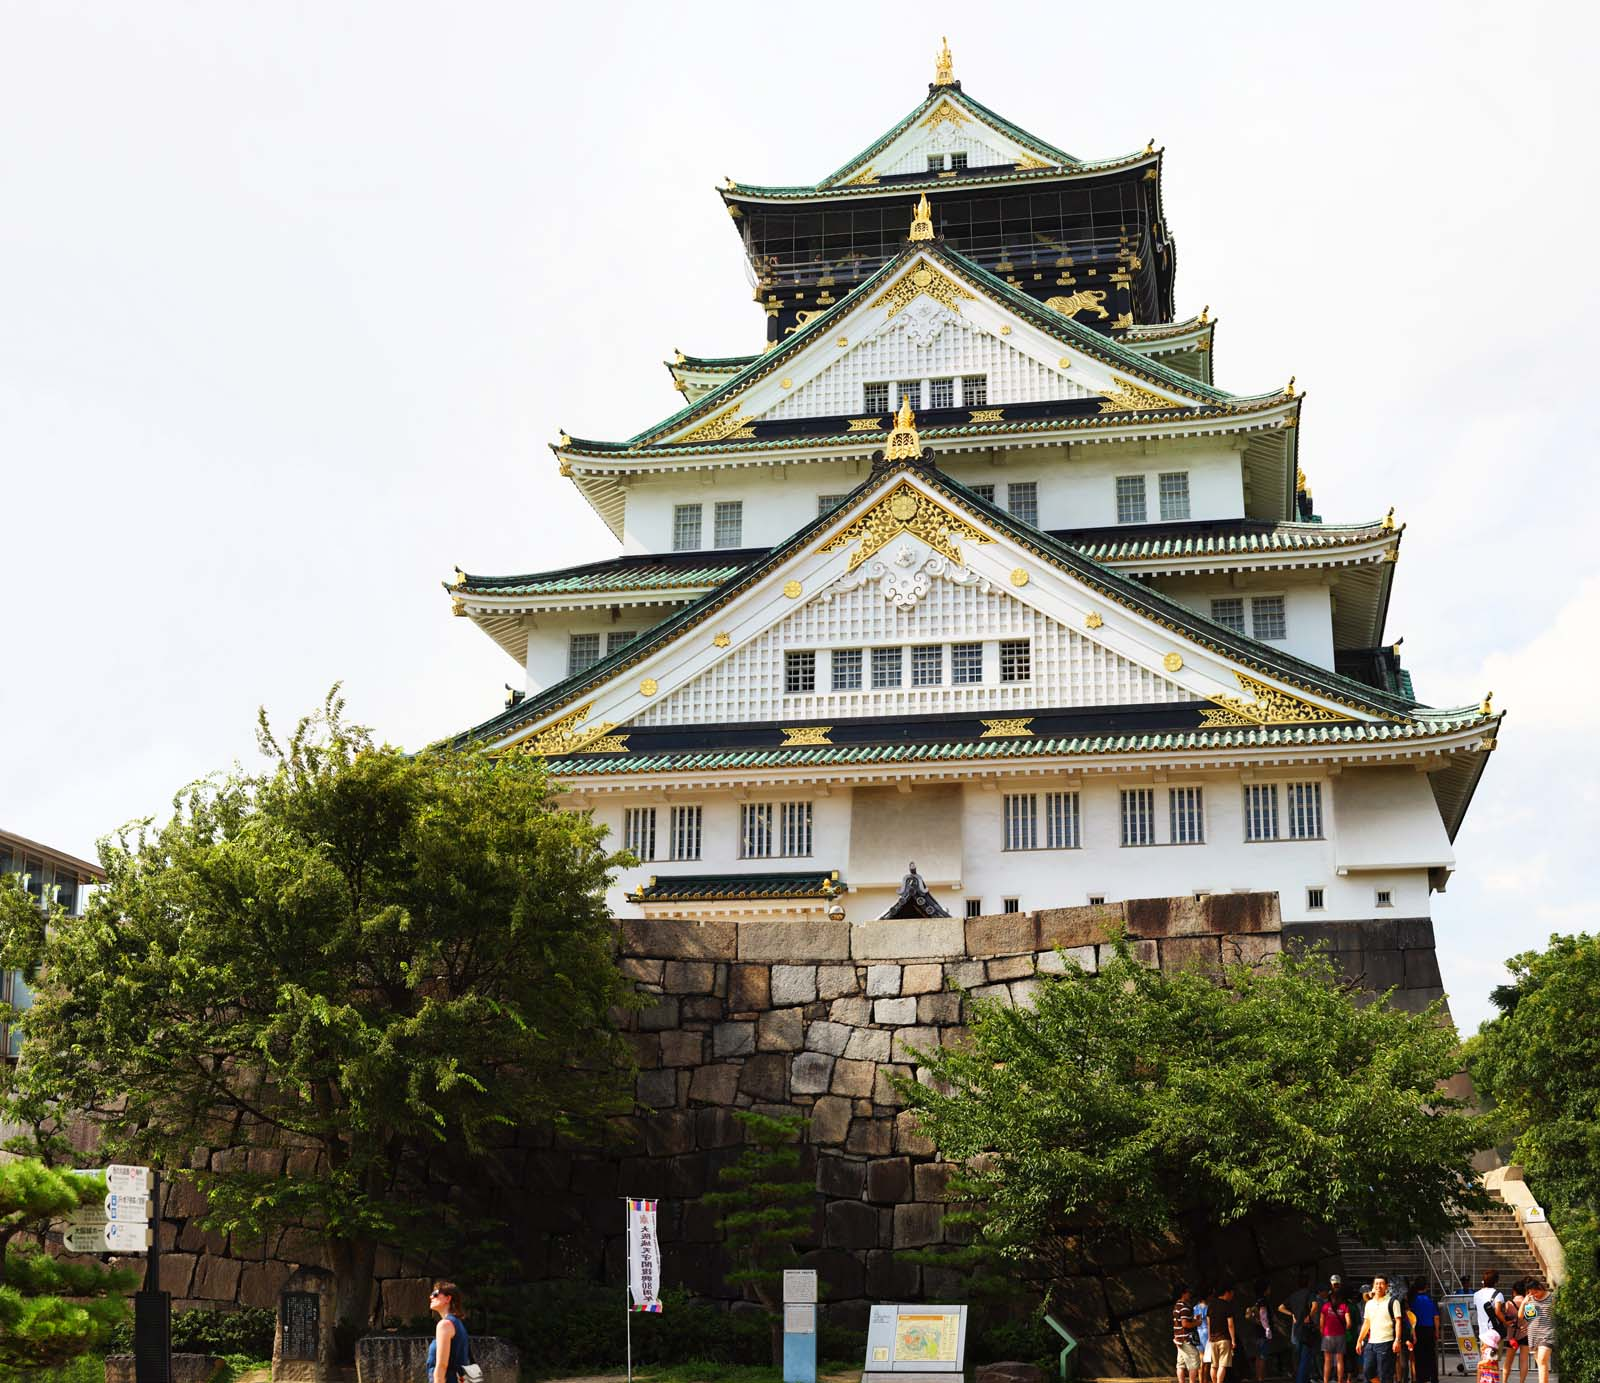 photo,material,free,landscape,picture,stock photo,Creative Commons,The Osaka-jo Castle castle tower, camp of the Osaka summer, castle of the father of the Imperial adviser, Ieyasu Tokugawa, revival castle tower